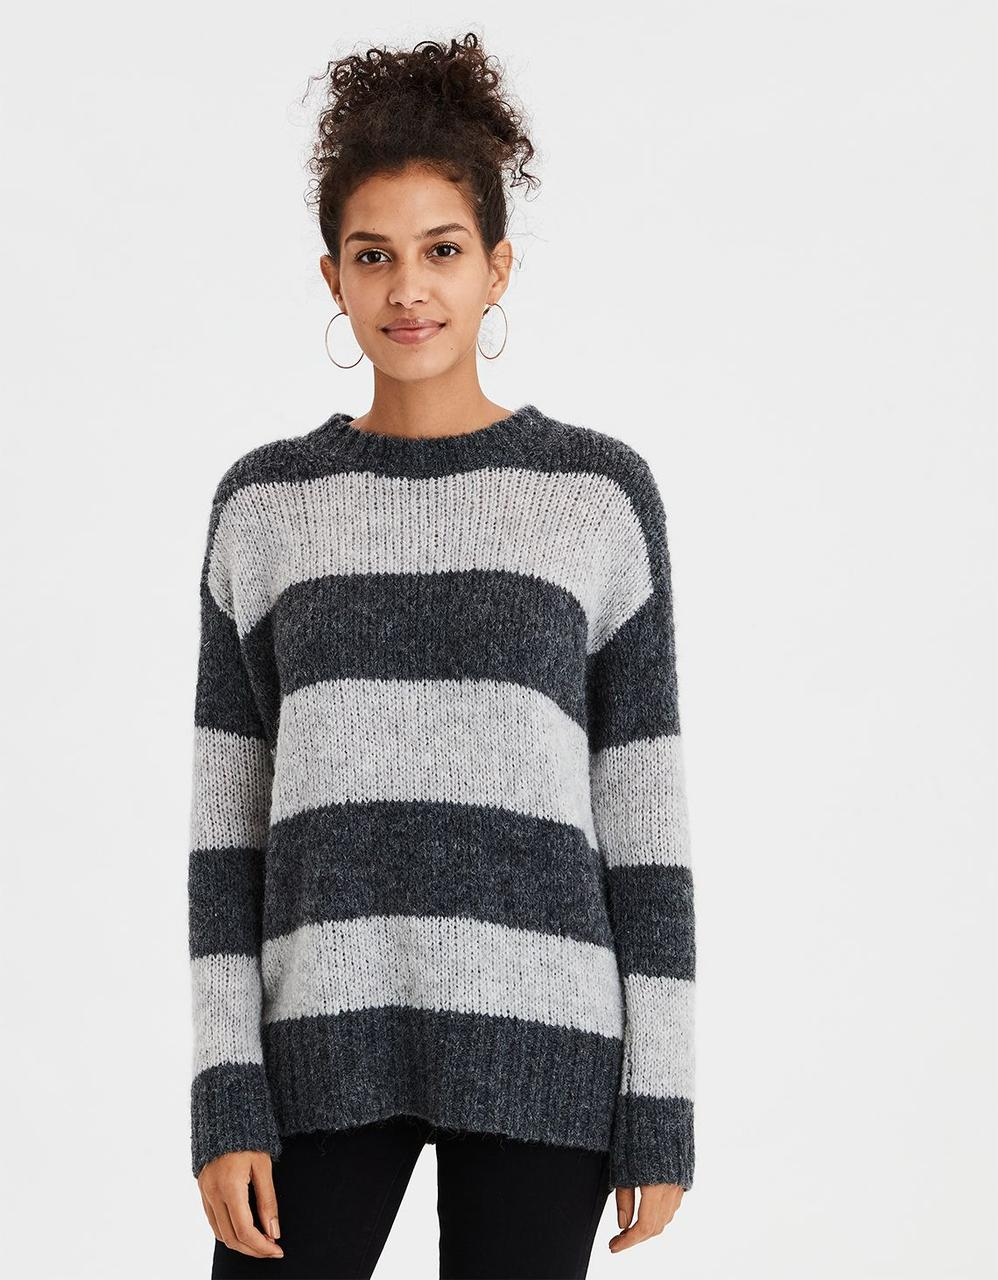 08574aa870fbe American Eagle Sweaters, AE RUGBY STRIPE PULLOVER SWEATER for Women ...